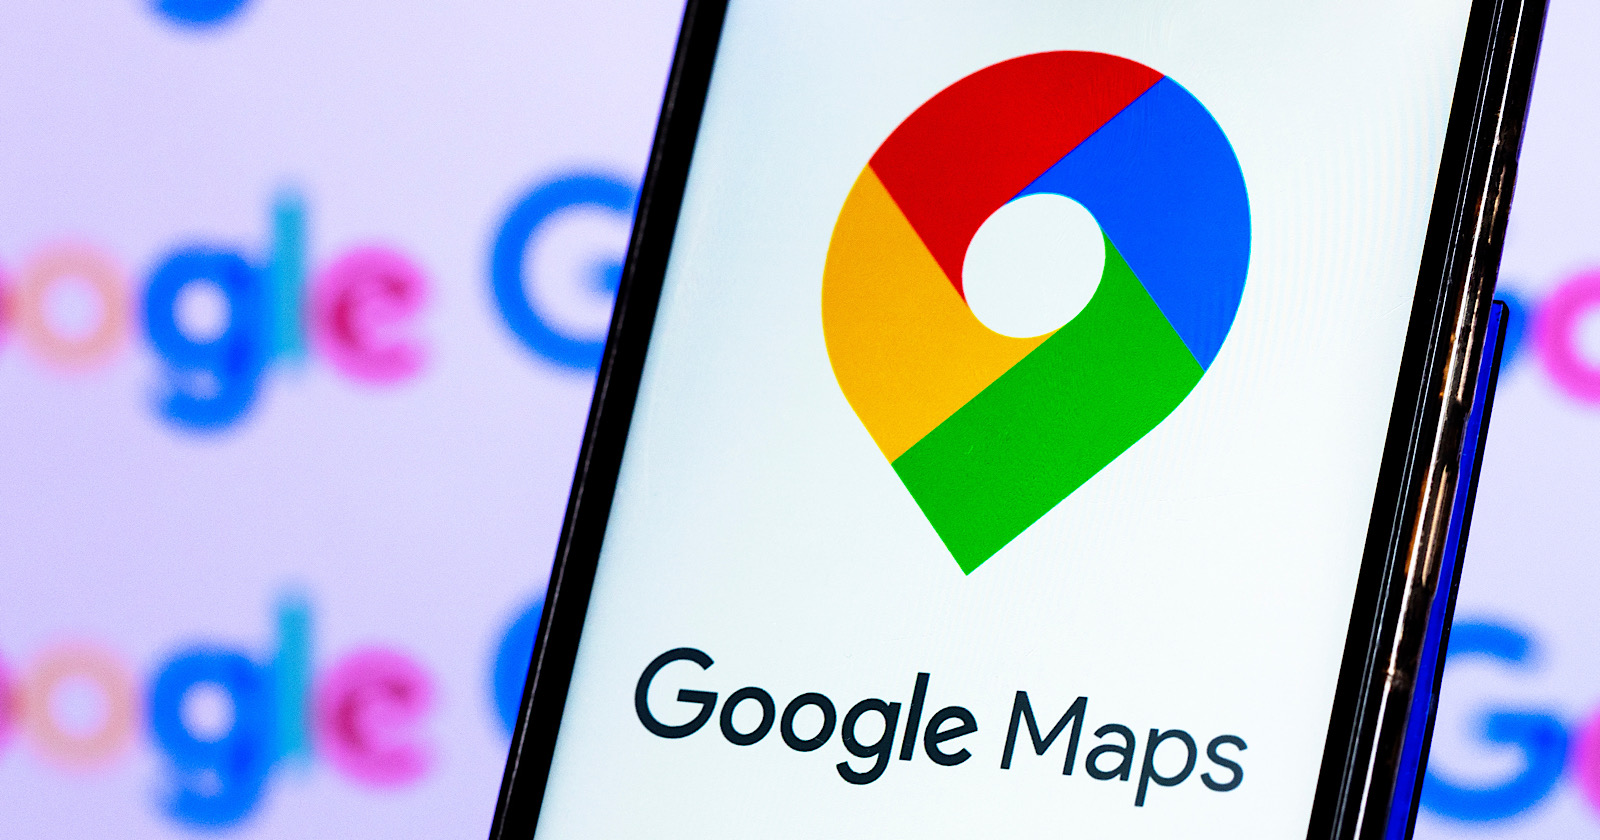 Google Maps Search Trends For January 2021